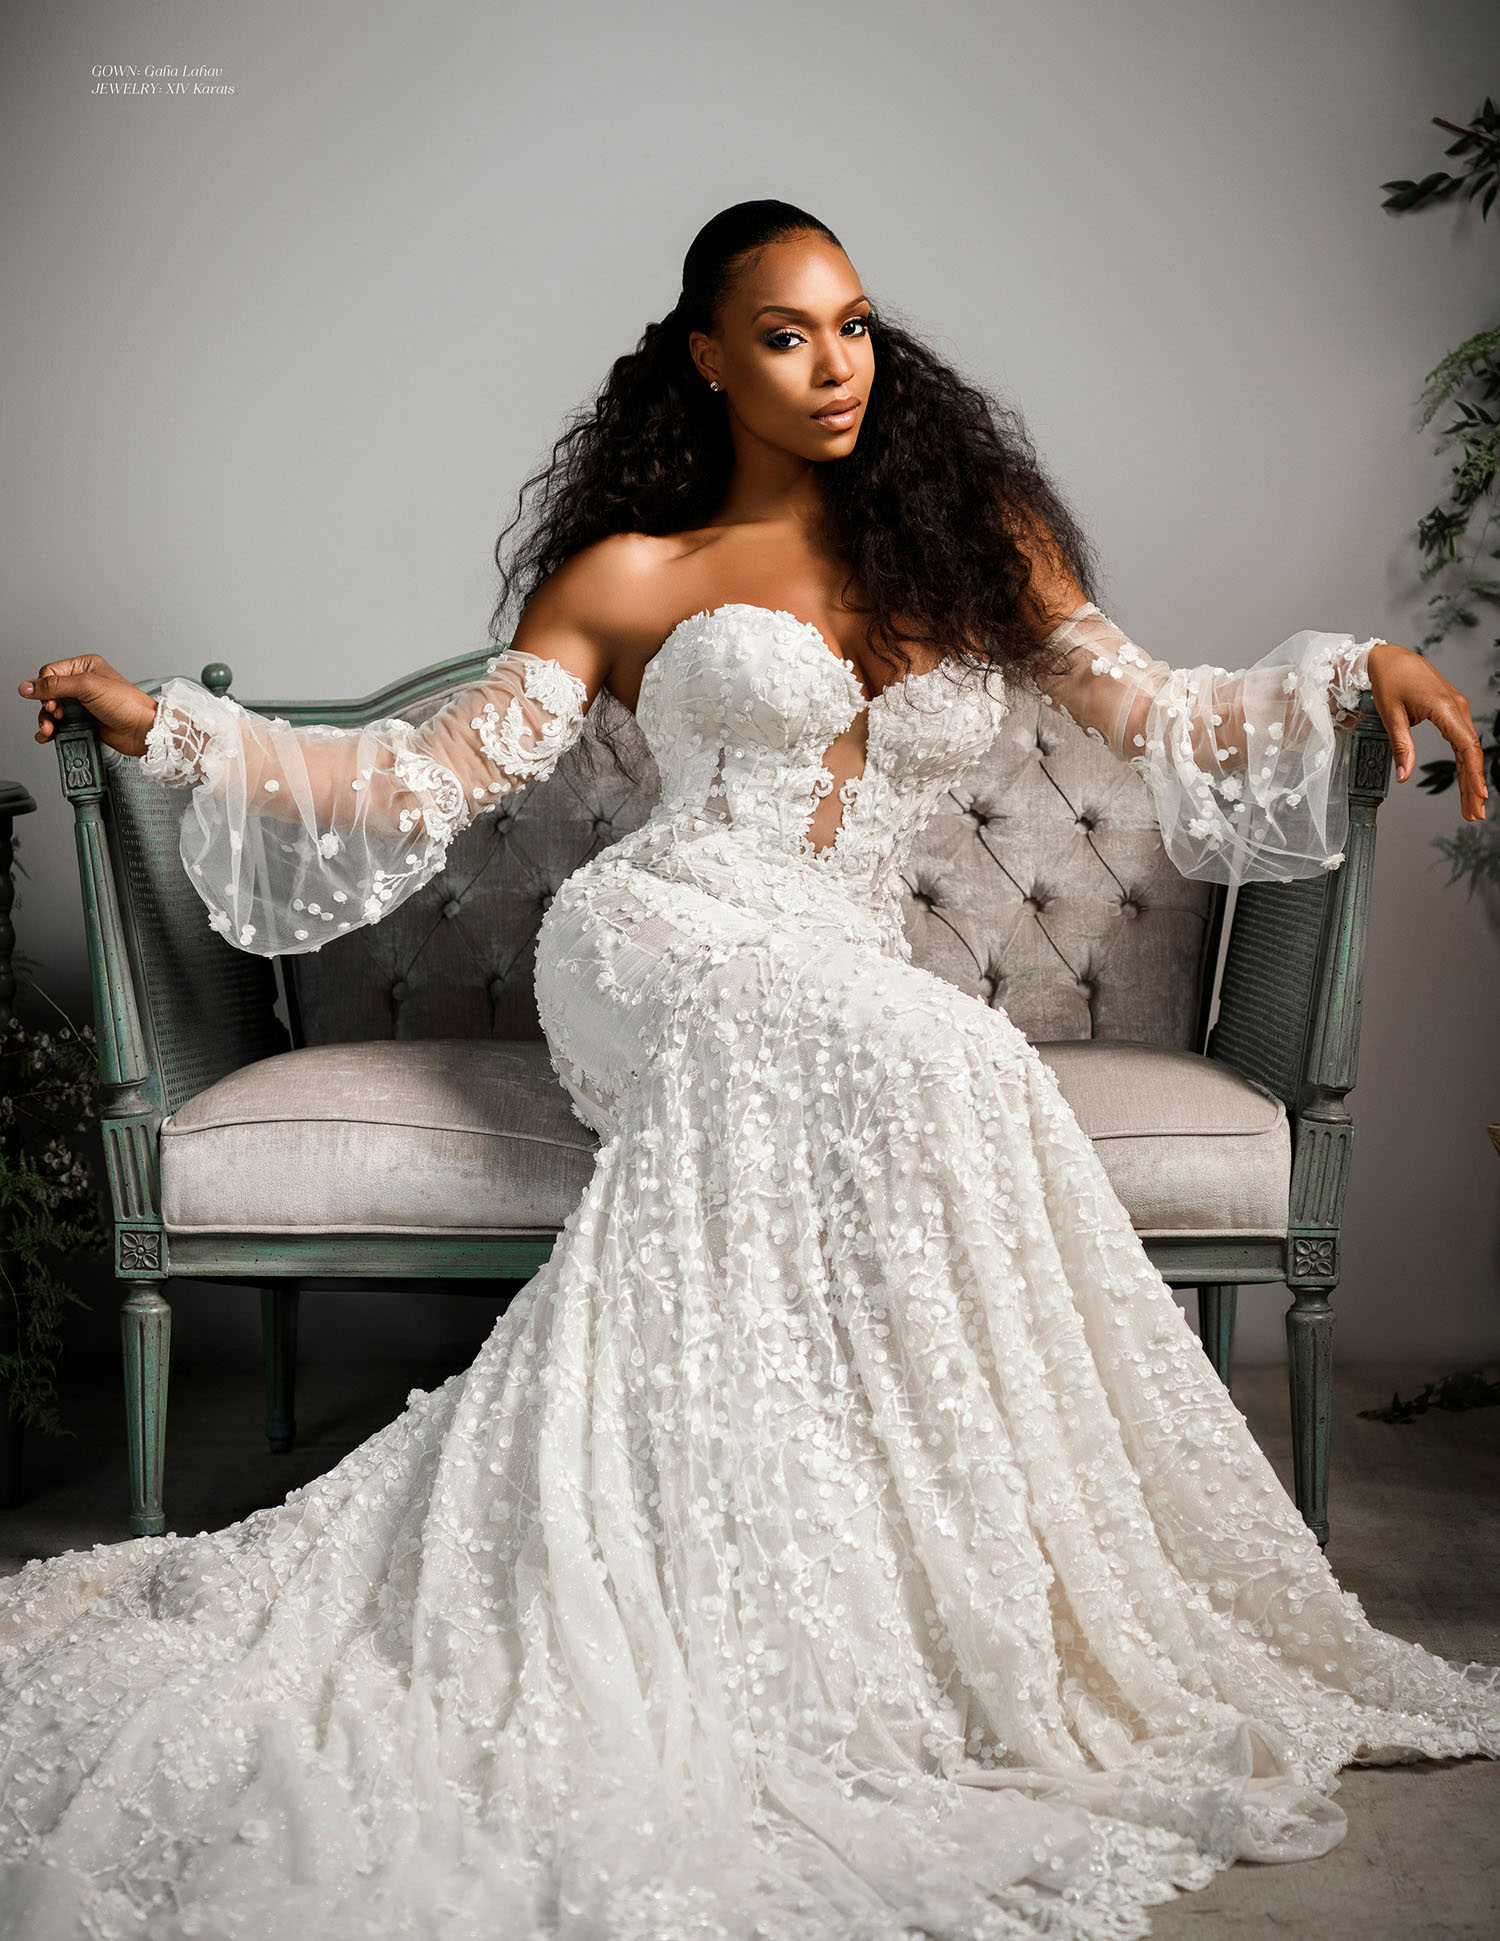 MunaLuchi Bride Winter 2019 Michelle Mitchenor Bridal Shoot - Set design by Eddie Zaratsian